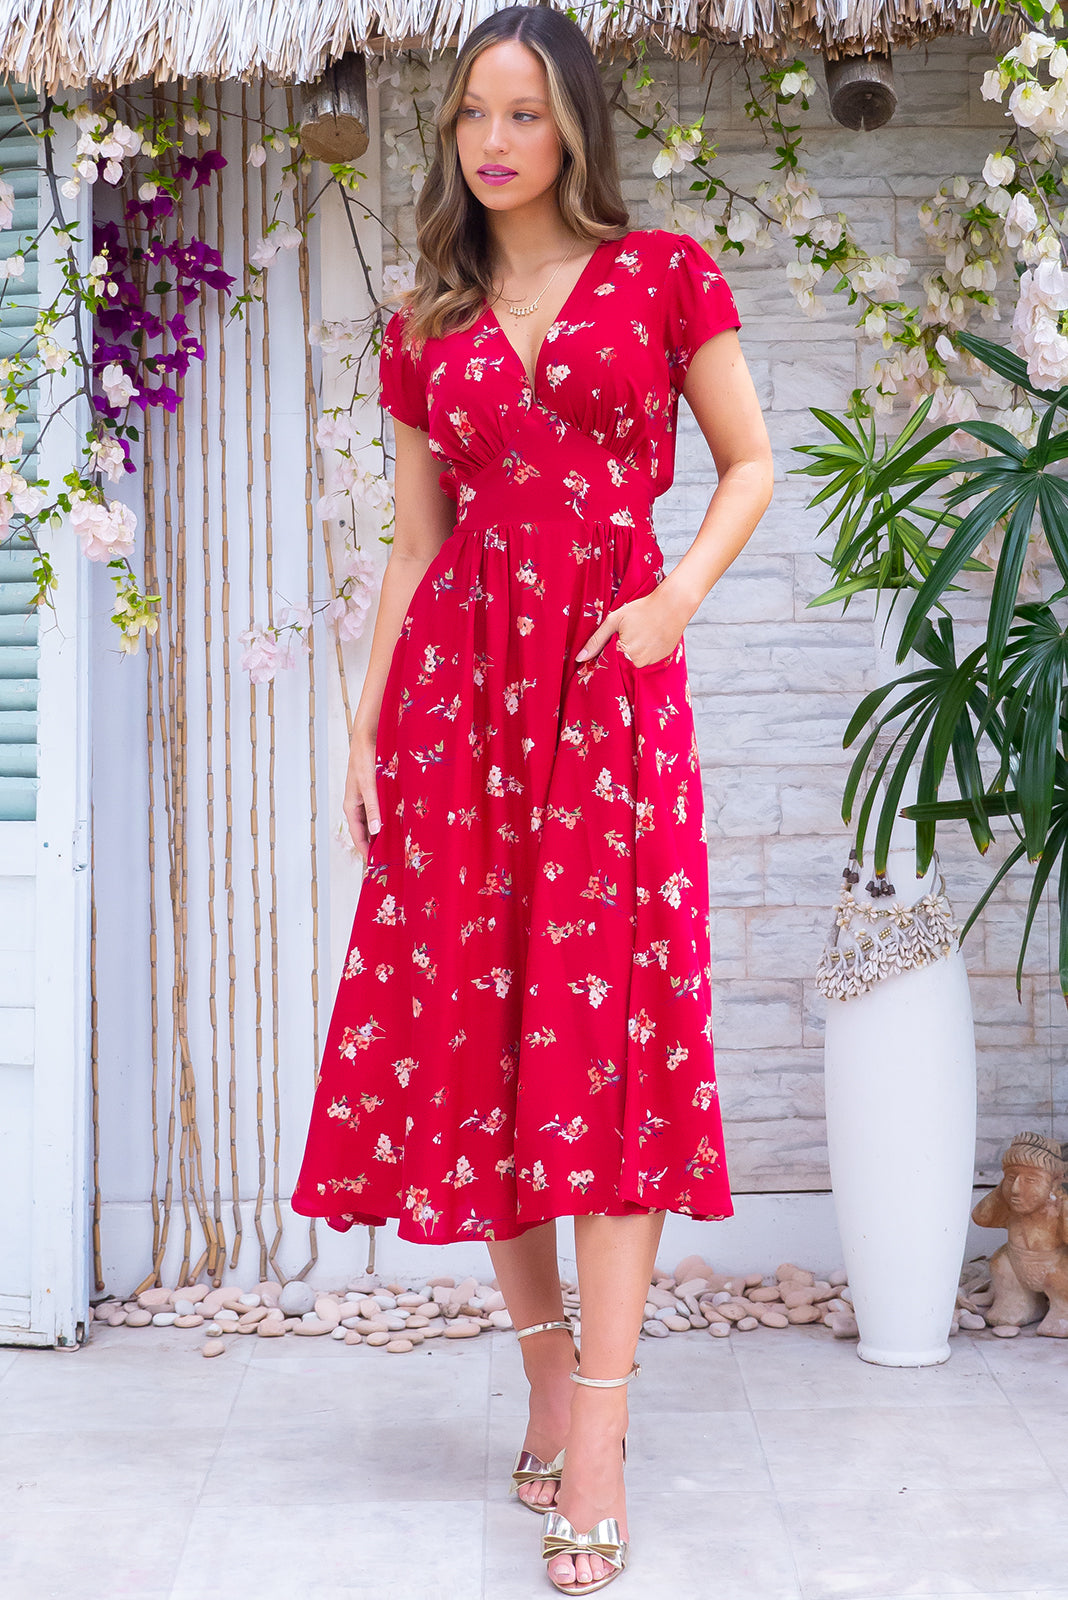 The Lizzie Red Treasure Dress features fitted basque waist with gathered bust, waist features elastic shirring at back, side pockets and 100% rayon in deep red base with scattered floral print.